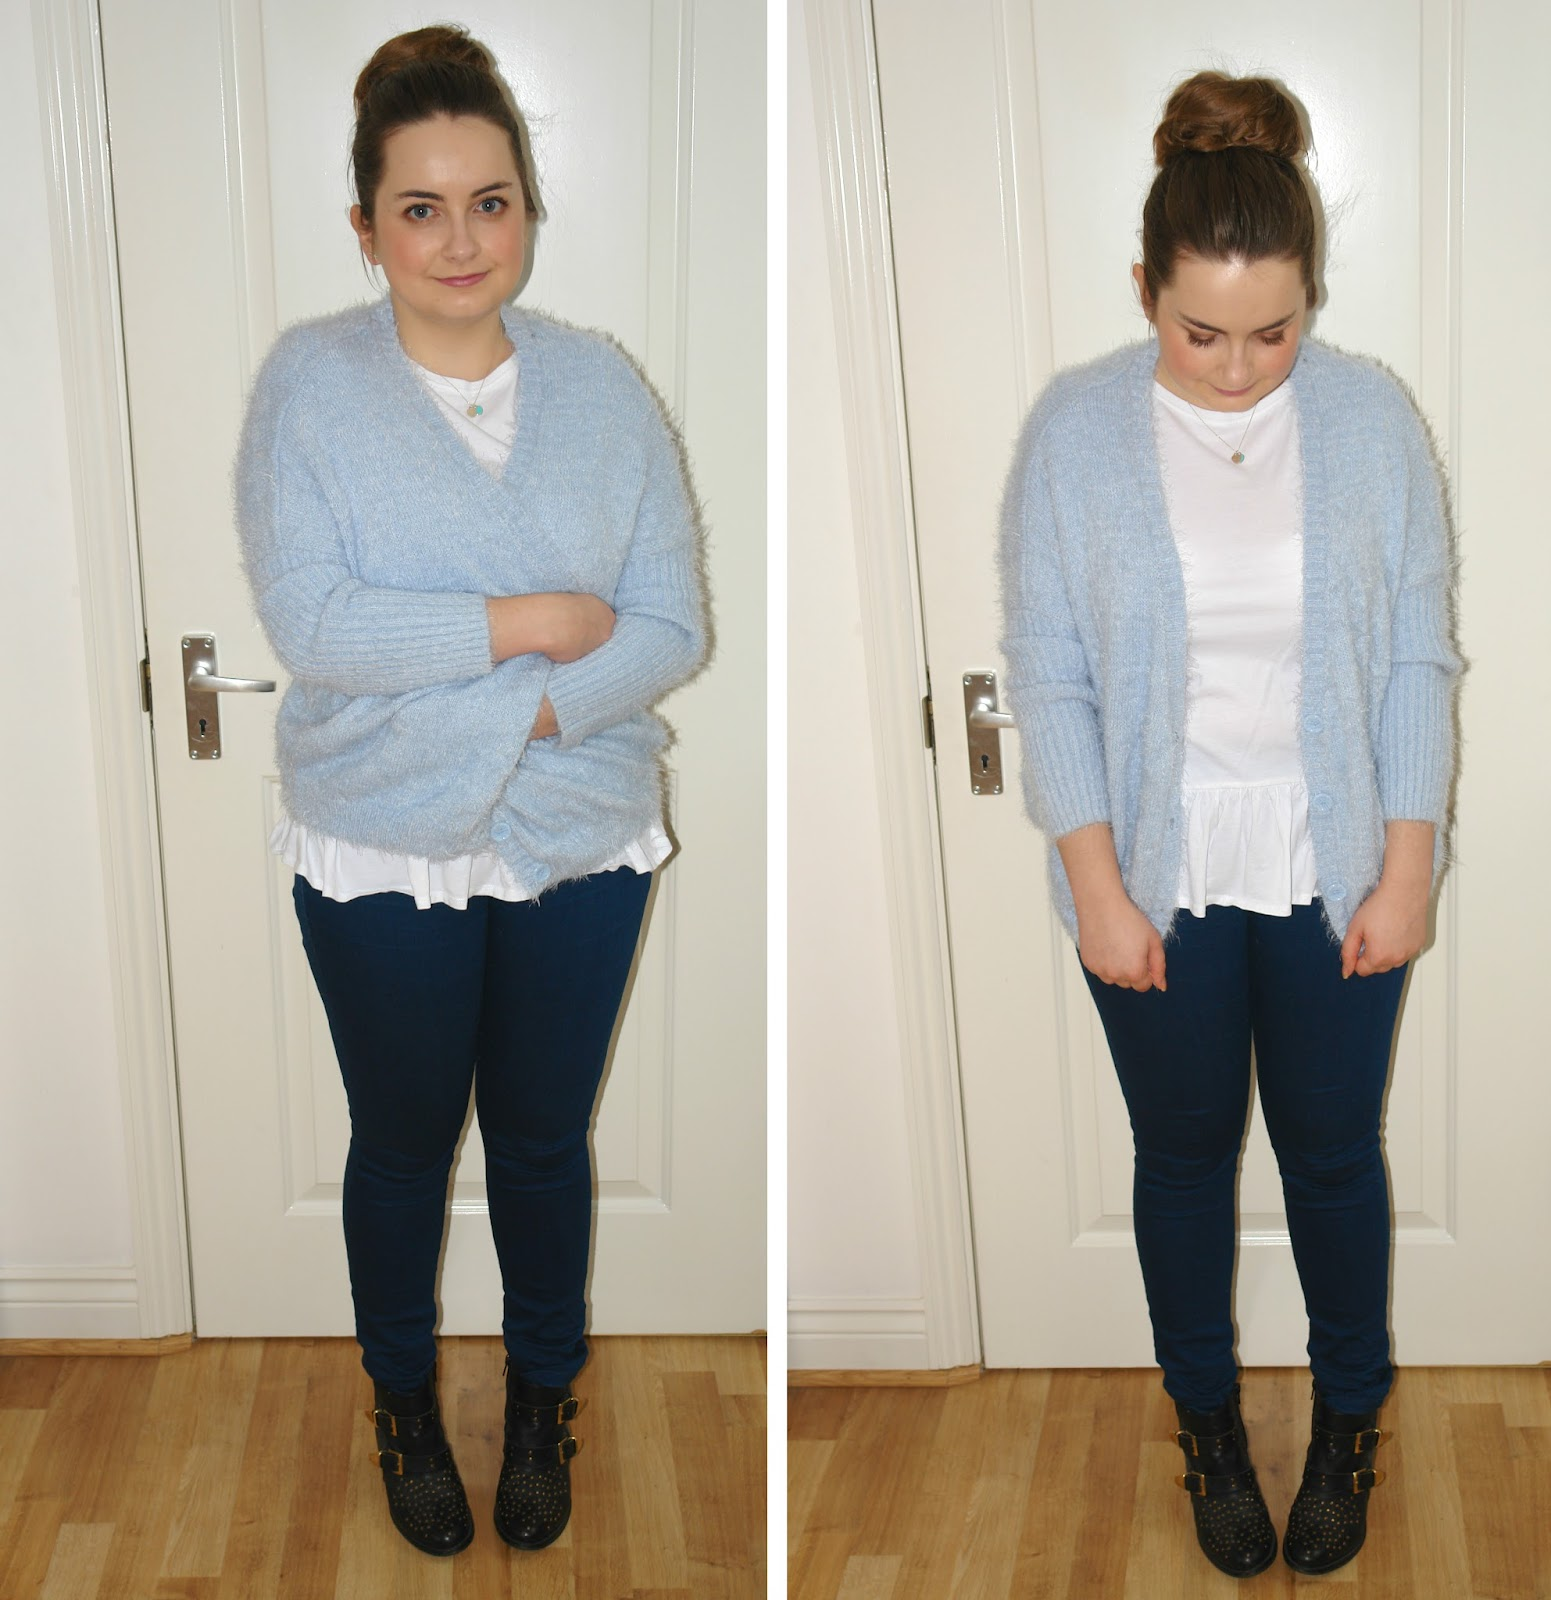 WHAT I WORE TODAY: fluffy pale blue jumper with Tiffany jewellery, Tiffany bow stud earrings, Return to Tiffany double heart tag pendant, WHAT I WORE TODAY, WIWT, jumpers, blue, ASOS, Primark, jeans, Dorothy Perkins, Topshop, ankle boots, Tiffany, earrings, necklace, jewellery, outfit, OOTD fashion UK blogger